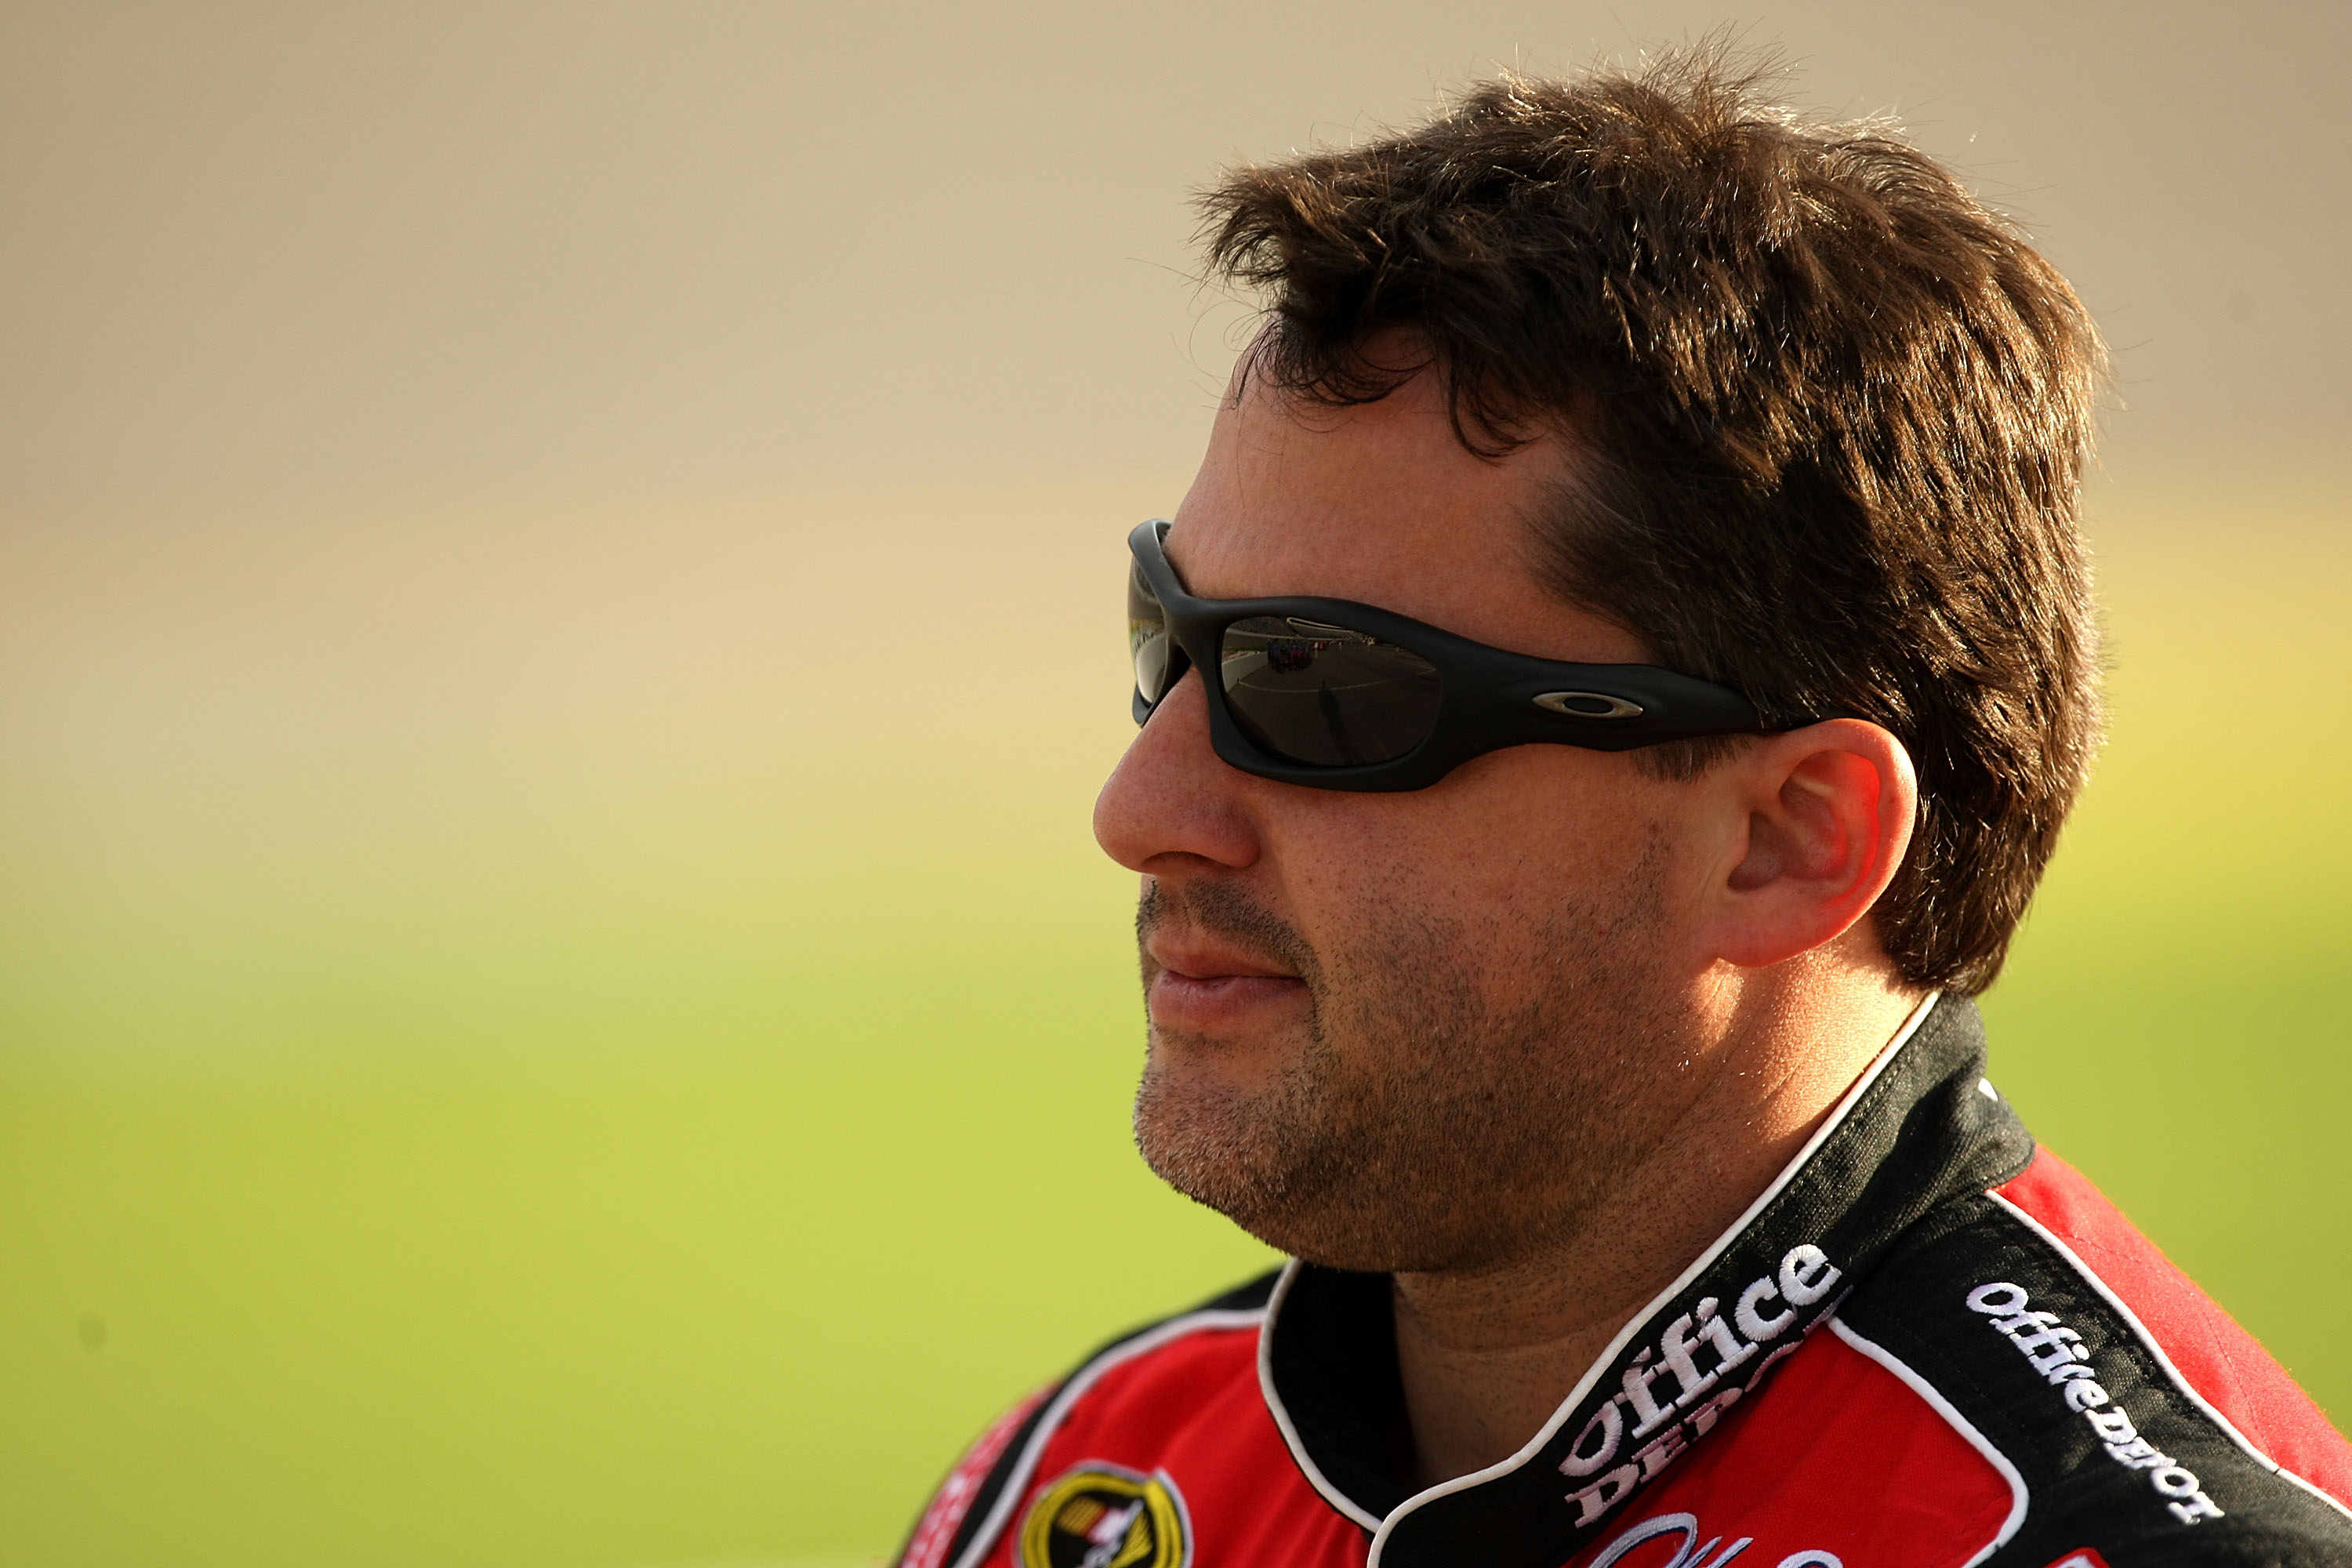 Where There's Smoke: Up Close With Tony Stewart, NASCAR's Nastiest Driver